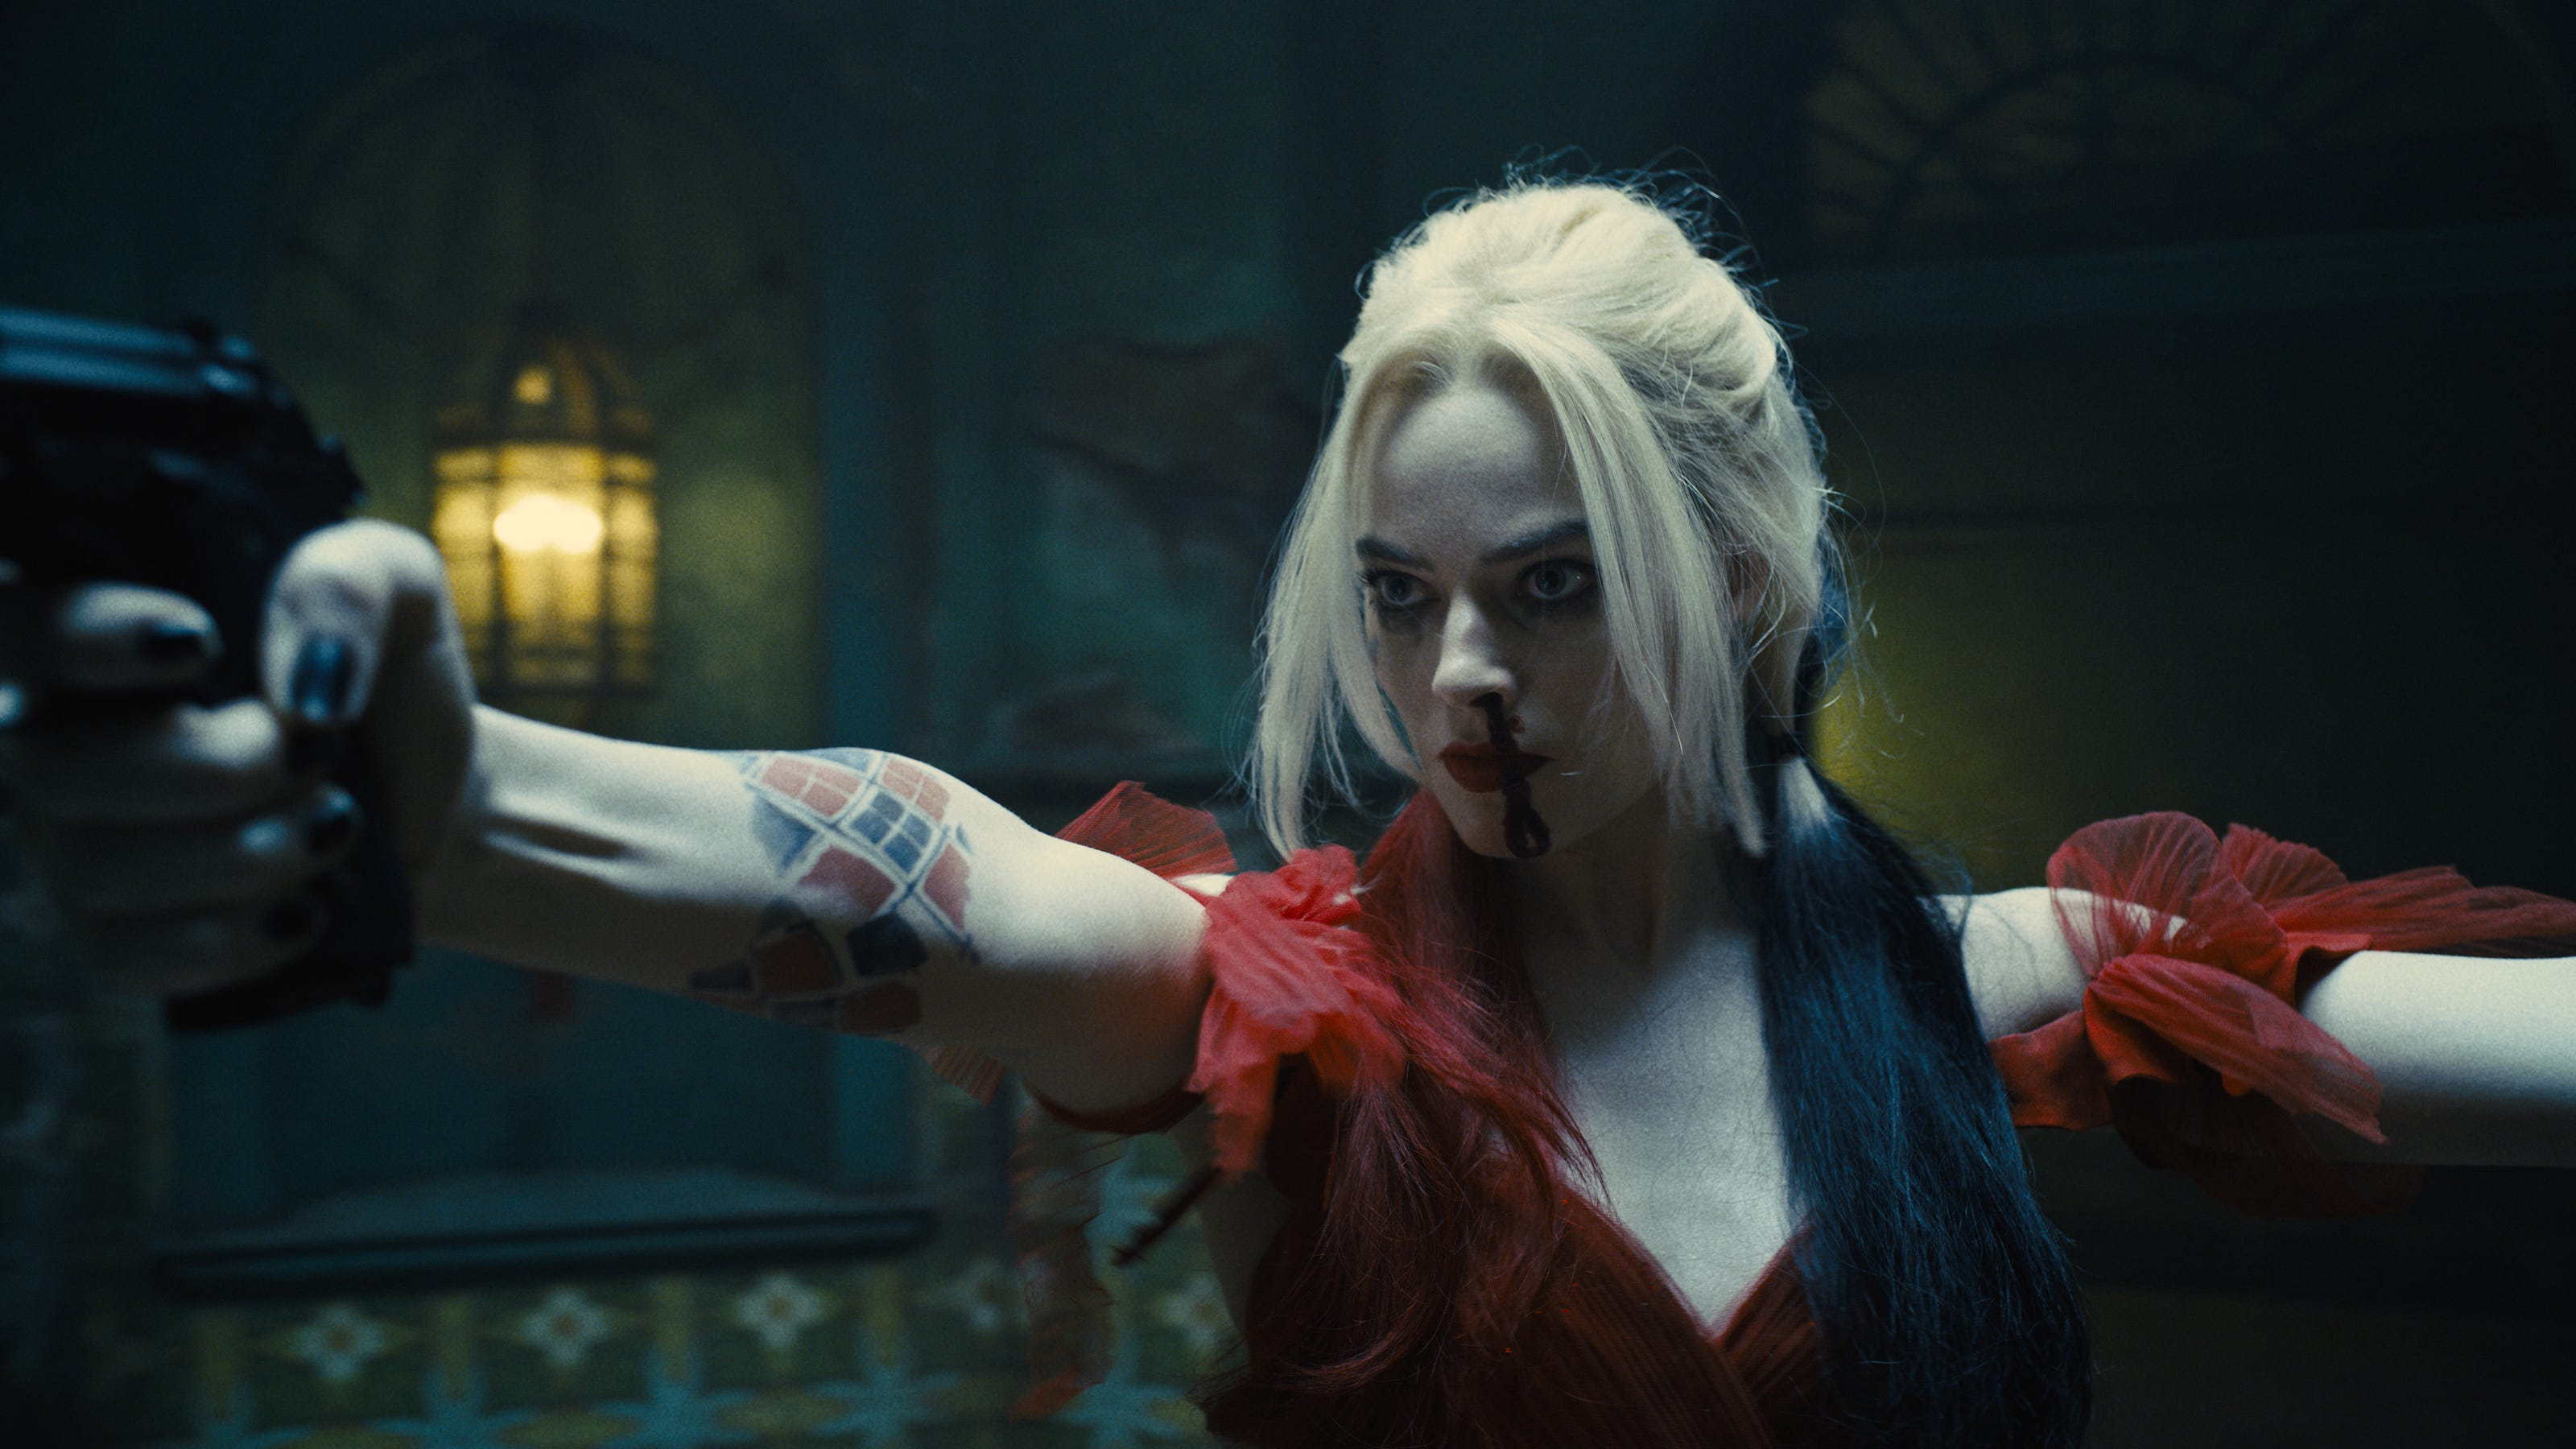 The Suicide Squad: Margot Robbie's Harley Quinn is dating again